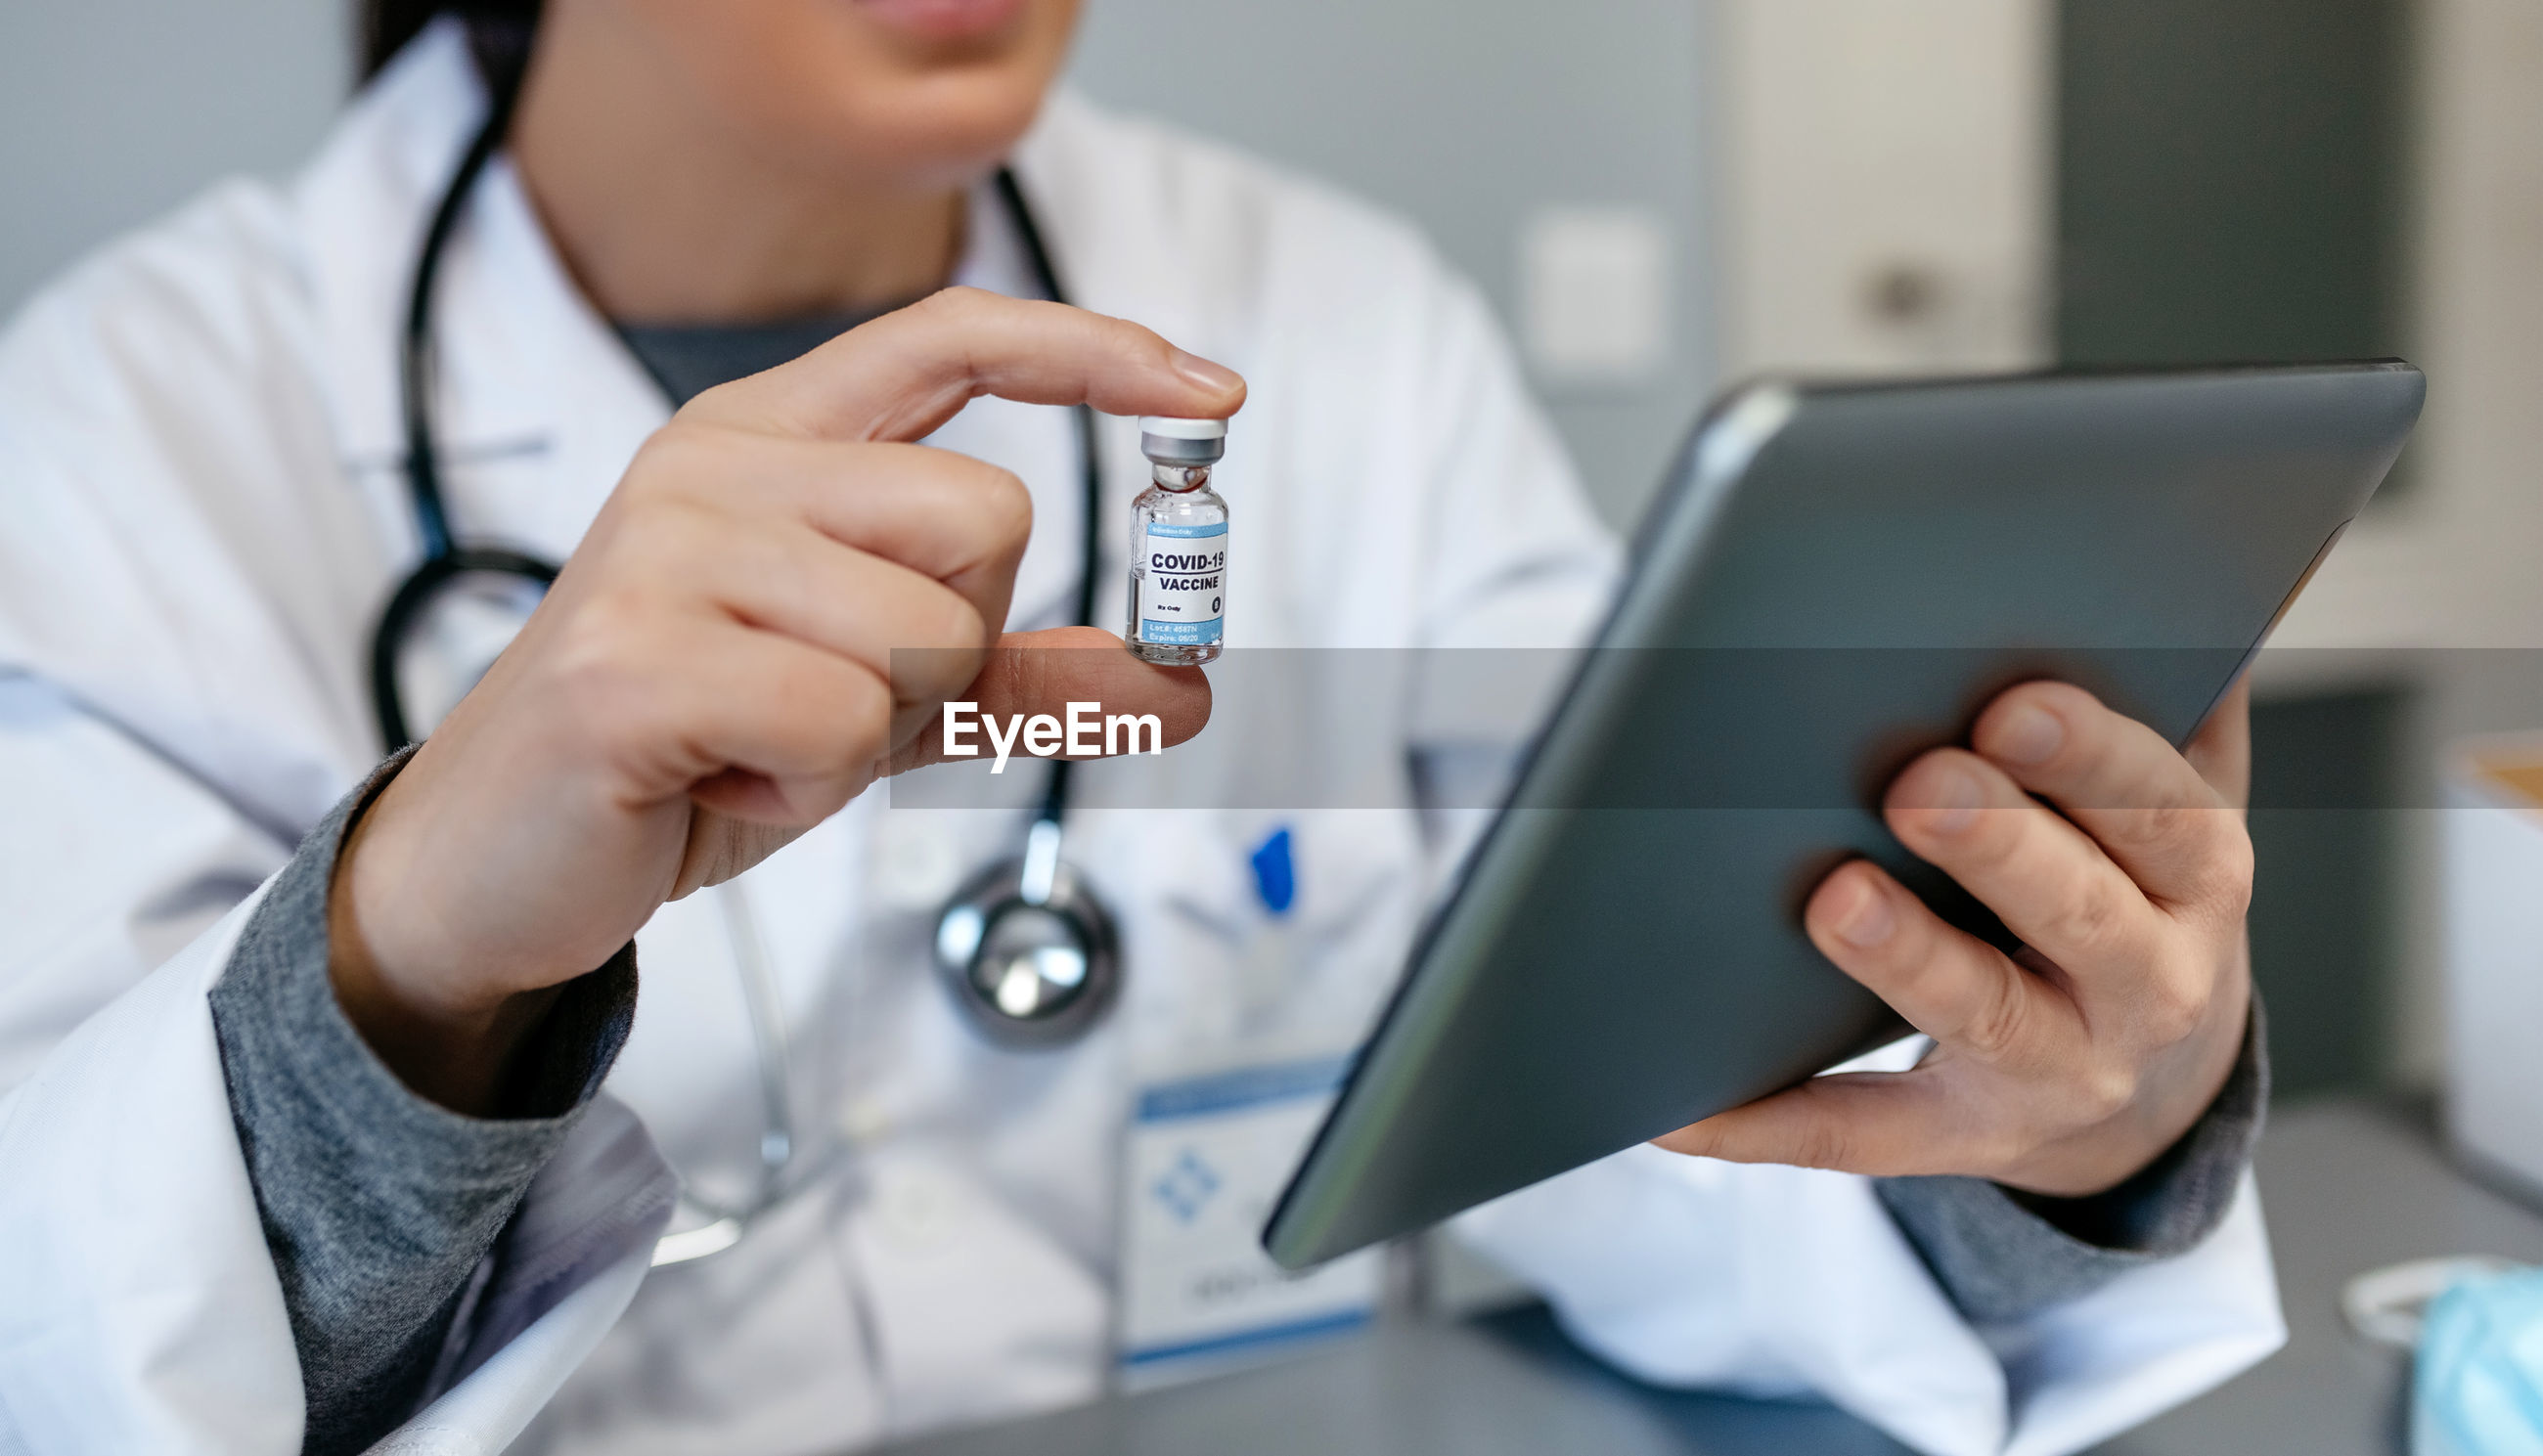 Midsection of doctor holding vaccine using digital tablet